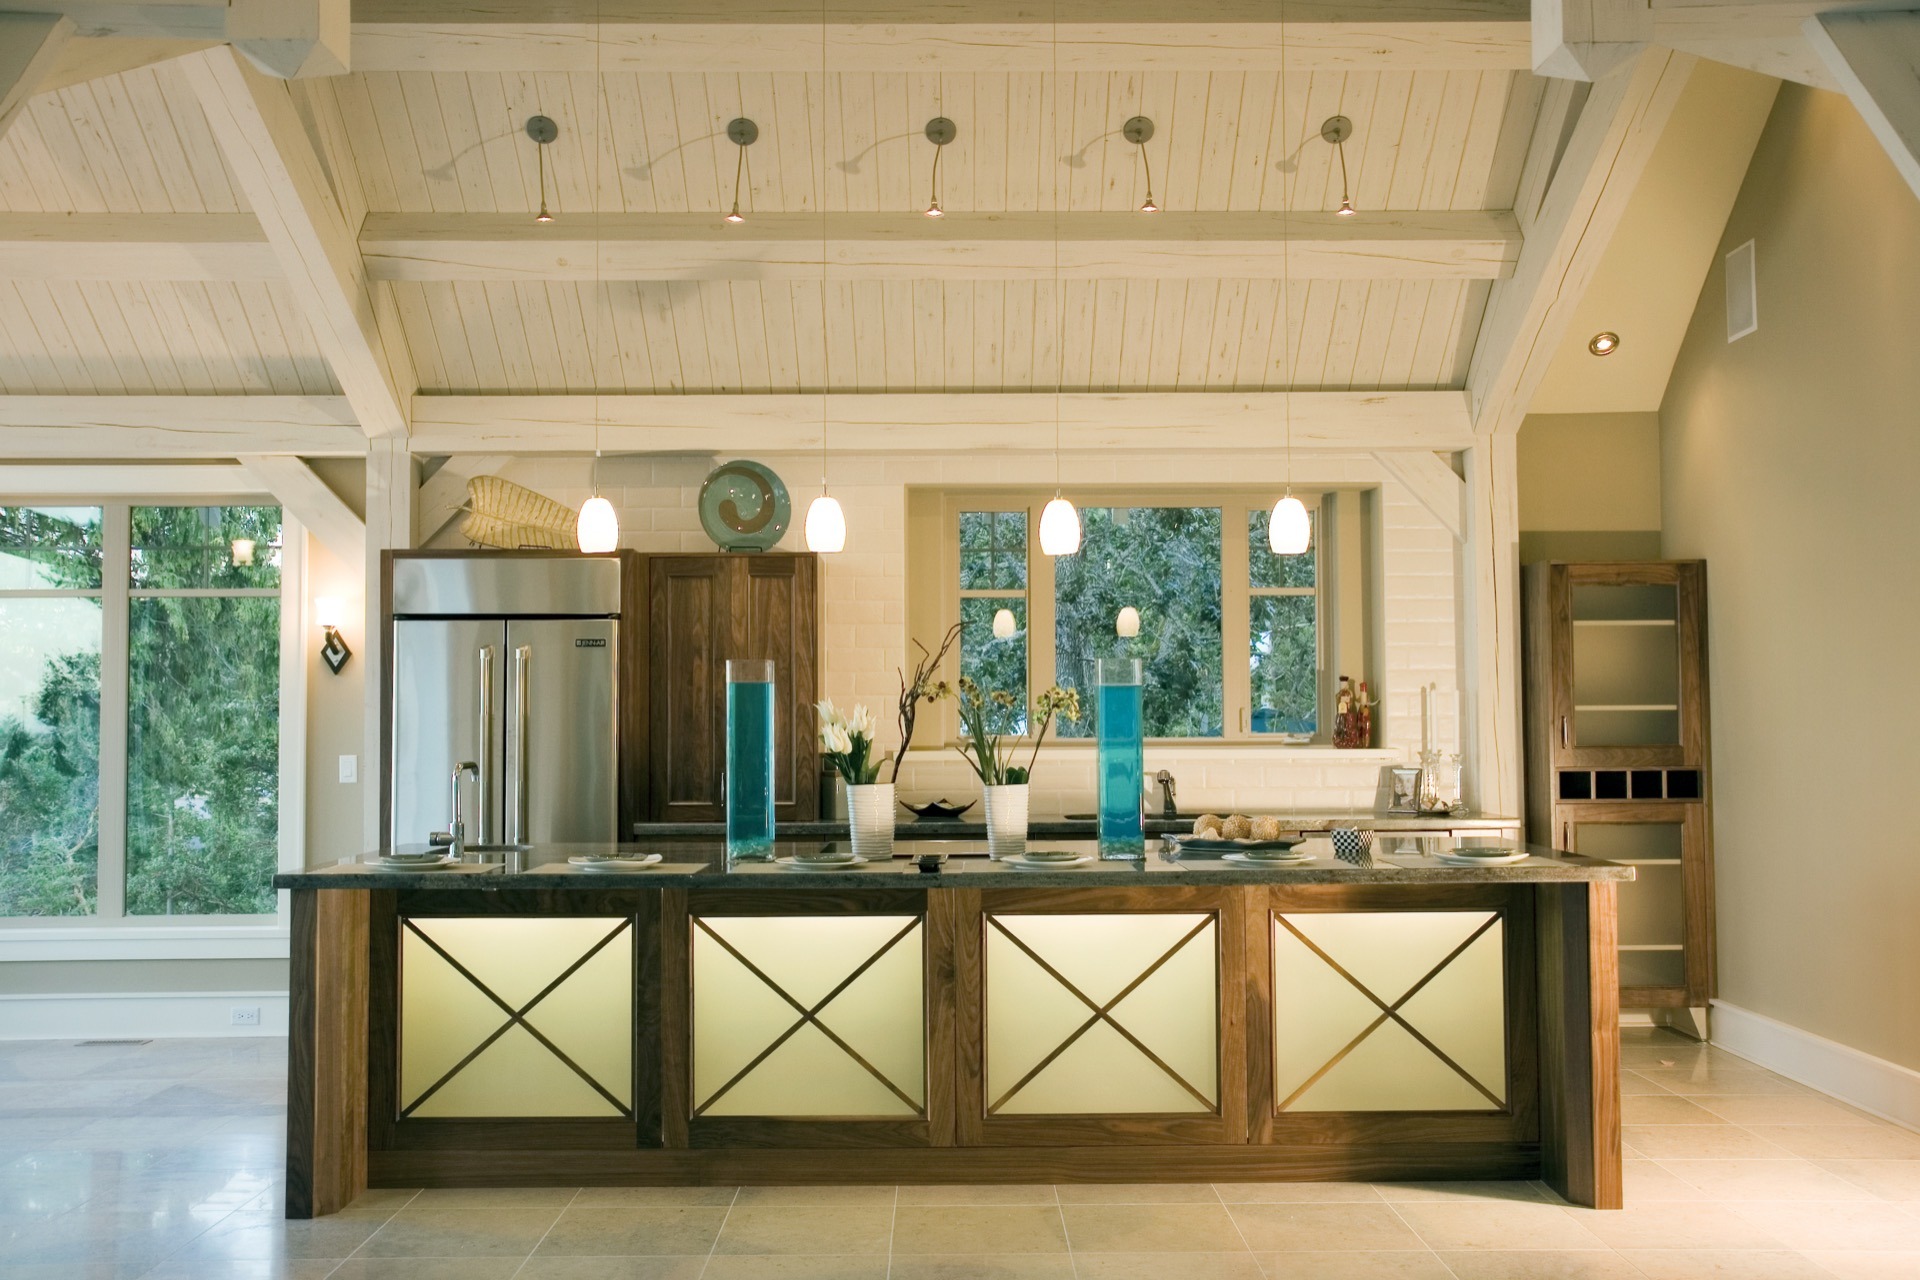 Paul Dabbs Custom Homes - Dolphin 71.jpg